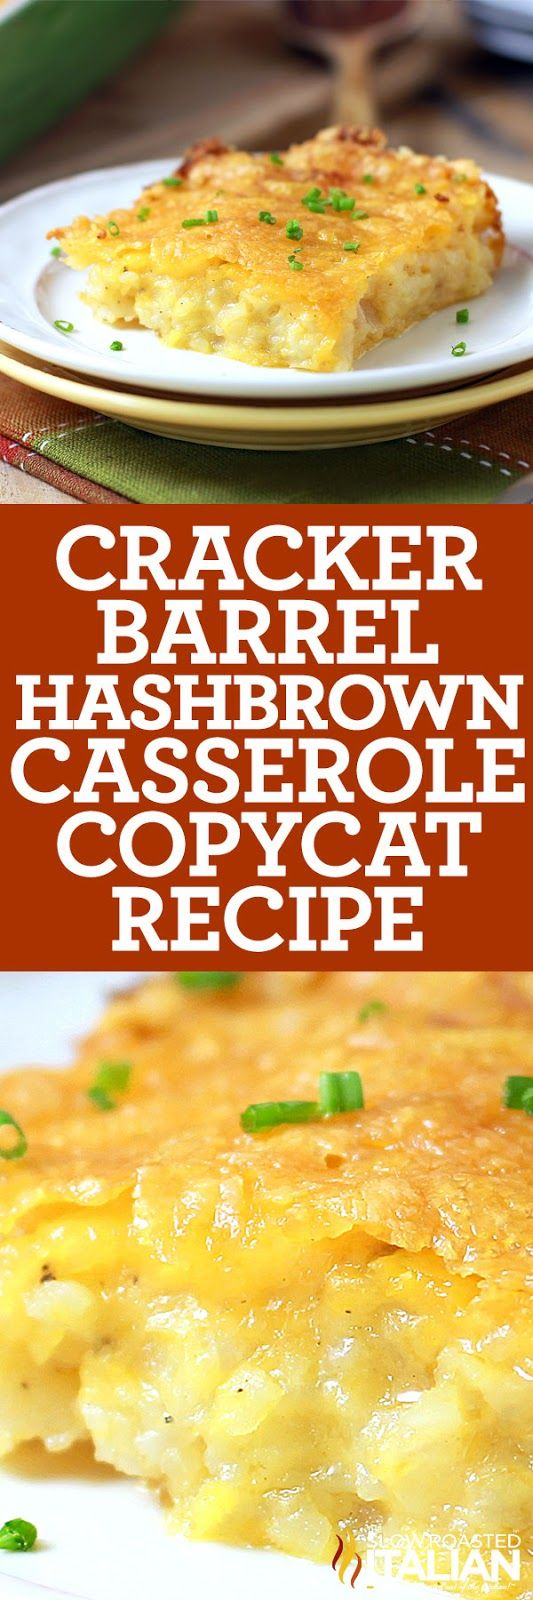 Cracker Barrel Copycat Hash Brown Casserole is ready to go in the oven in a snap.  This recipe all starts with homemade soup and ends with a heap of cheese.  It doesn't get better than that!